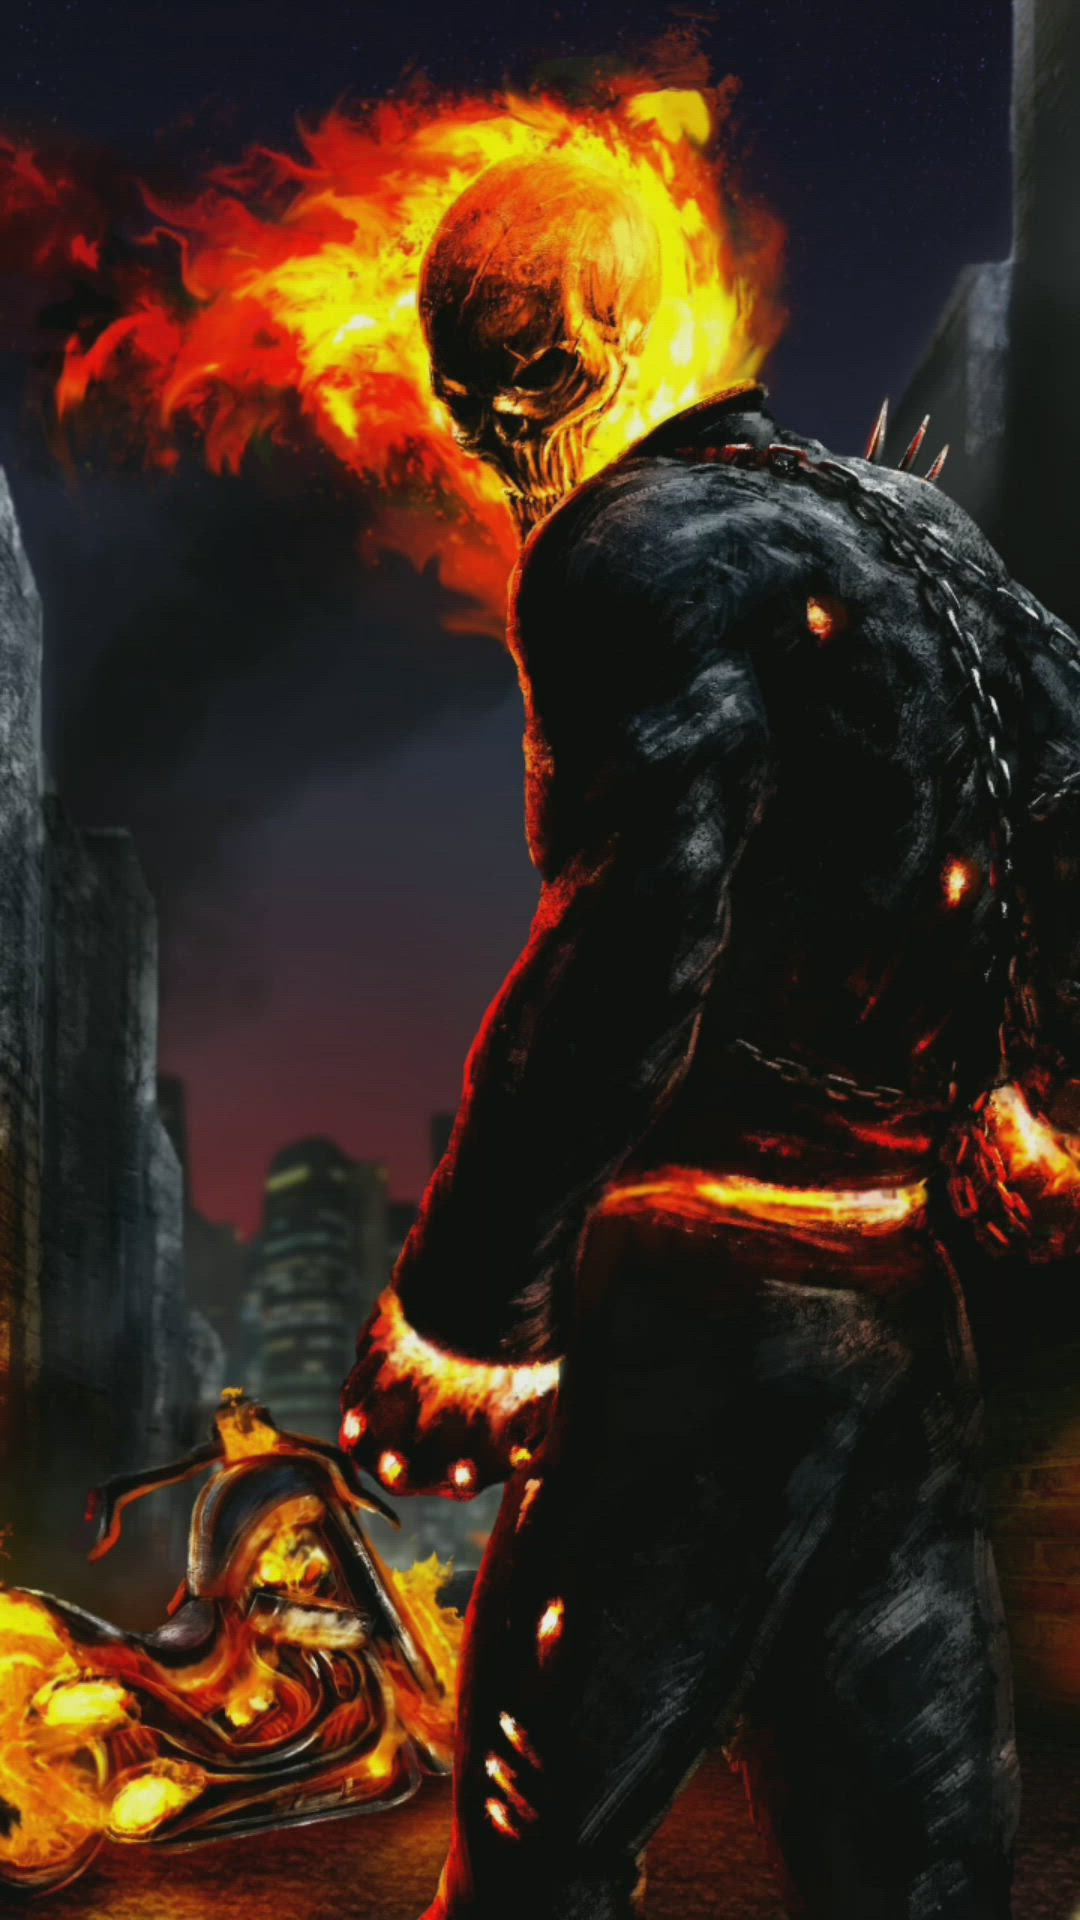 Ghost Rider Video Ghost Rider Wallpaper Ghost Rider Images Ghost Rider